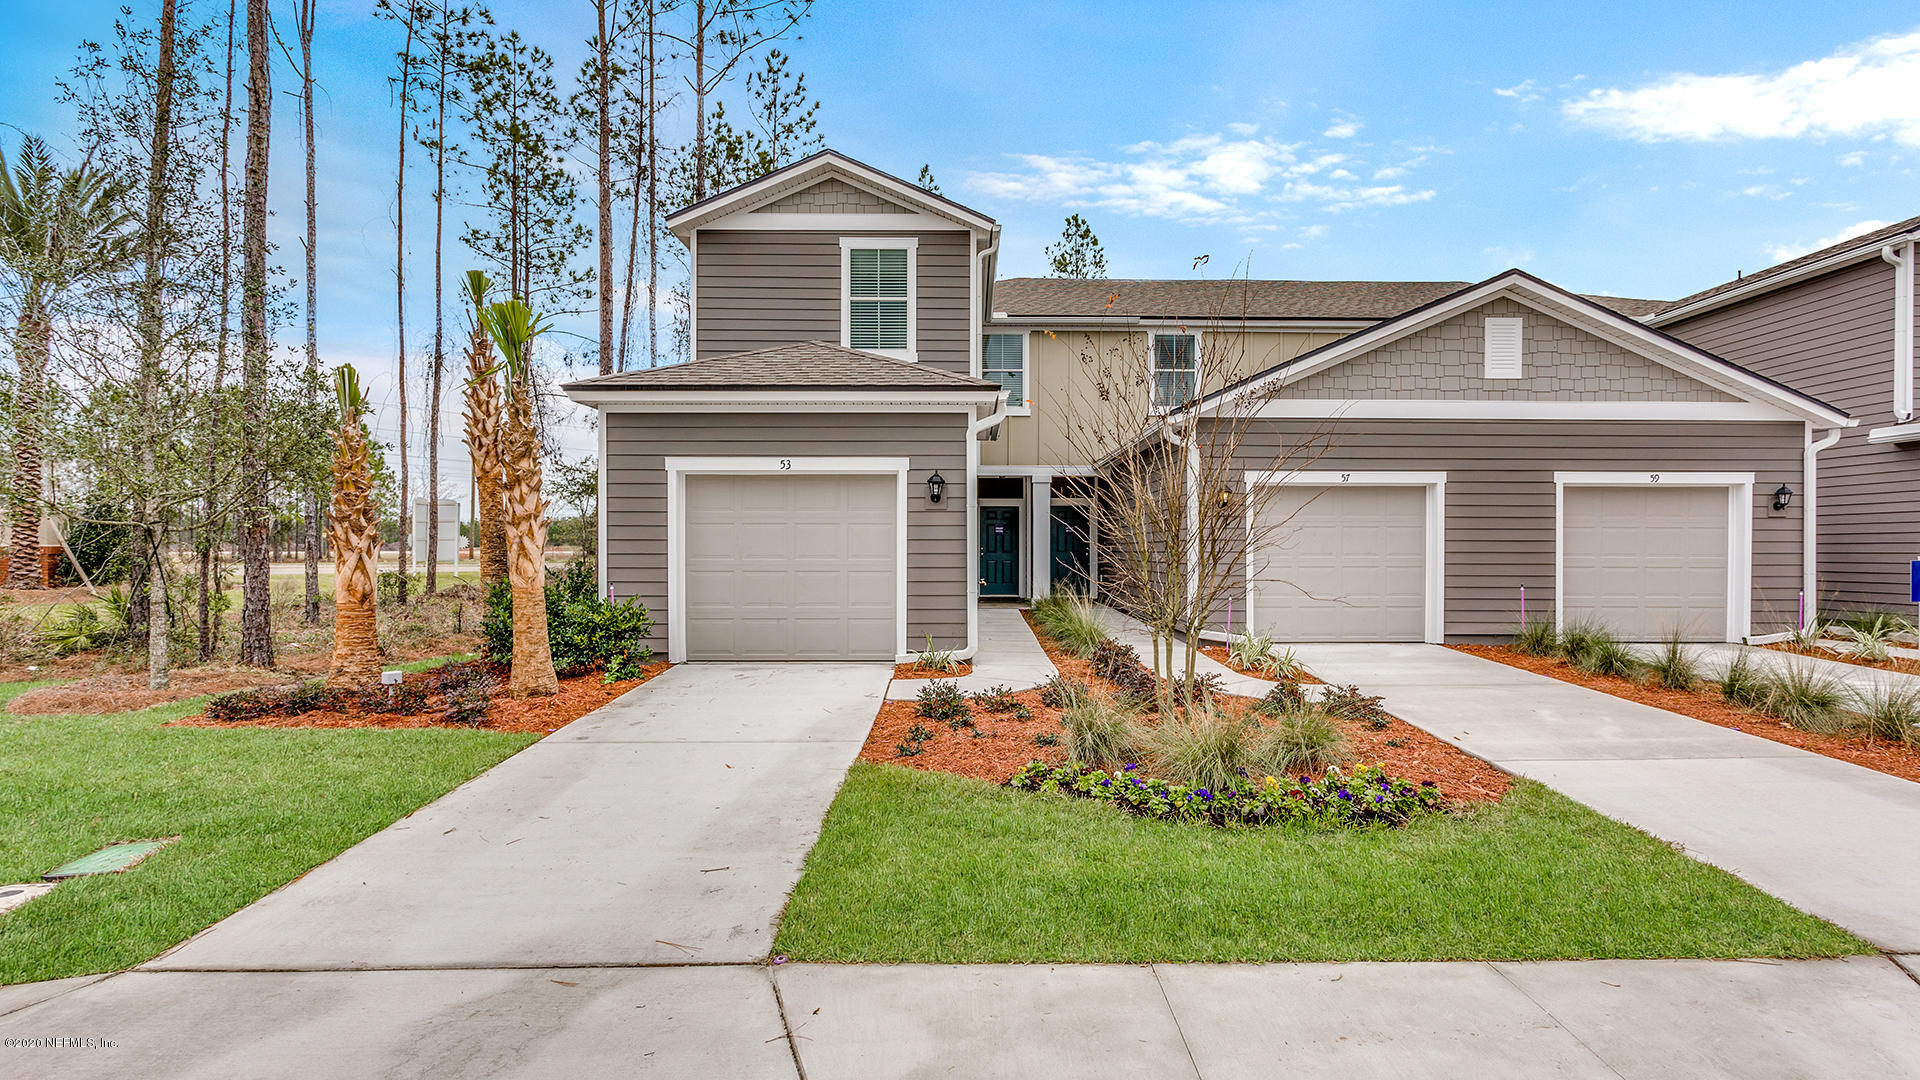 51 SCOTCH PEBBLE, ST JOHNS, FLORIDA 32259, 3 Bedrooms Bedrooms, ,2 BathroomsBathrooms,Residential,For sale,SCOTCH PEBBLE,1080991